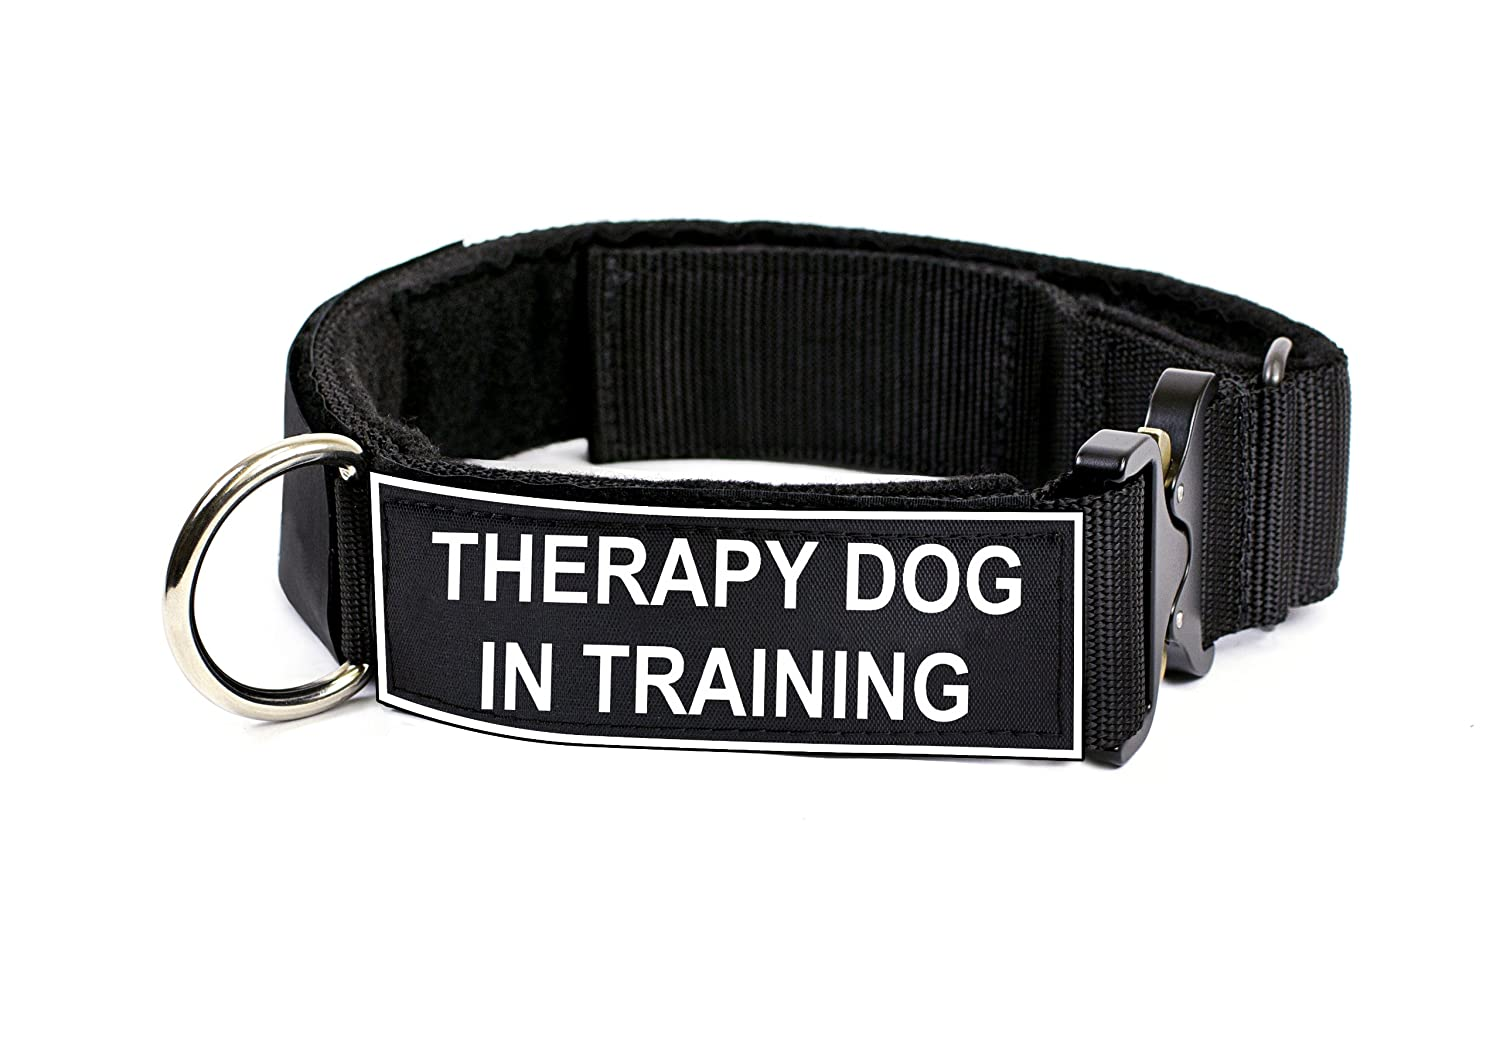 Dean & Tyler 21 to 26-Inch Strong Nylon Cobra Patch Collar with Felt Padding, Therapy Dog in Training Patches, Medium, Black